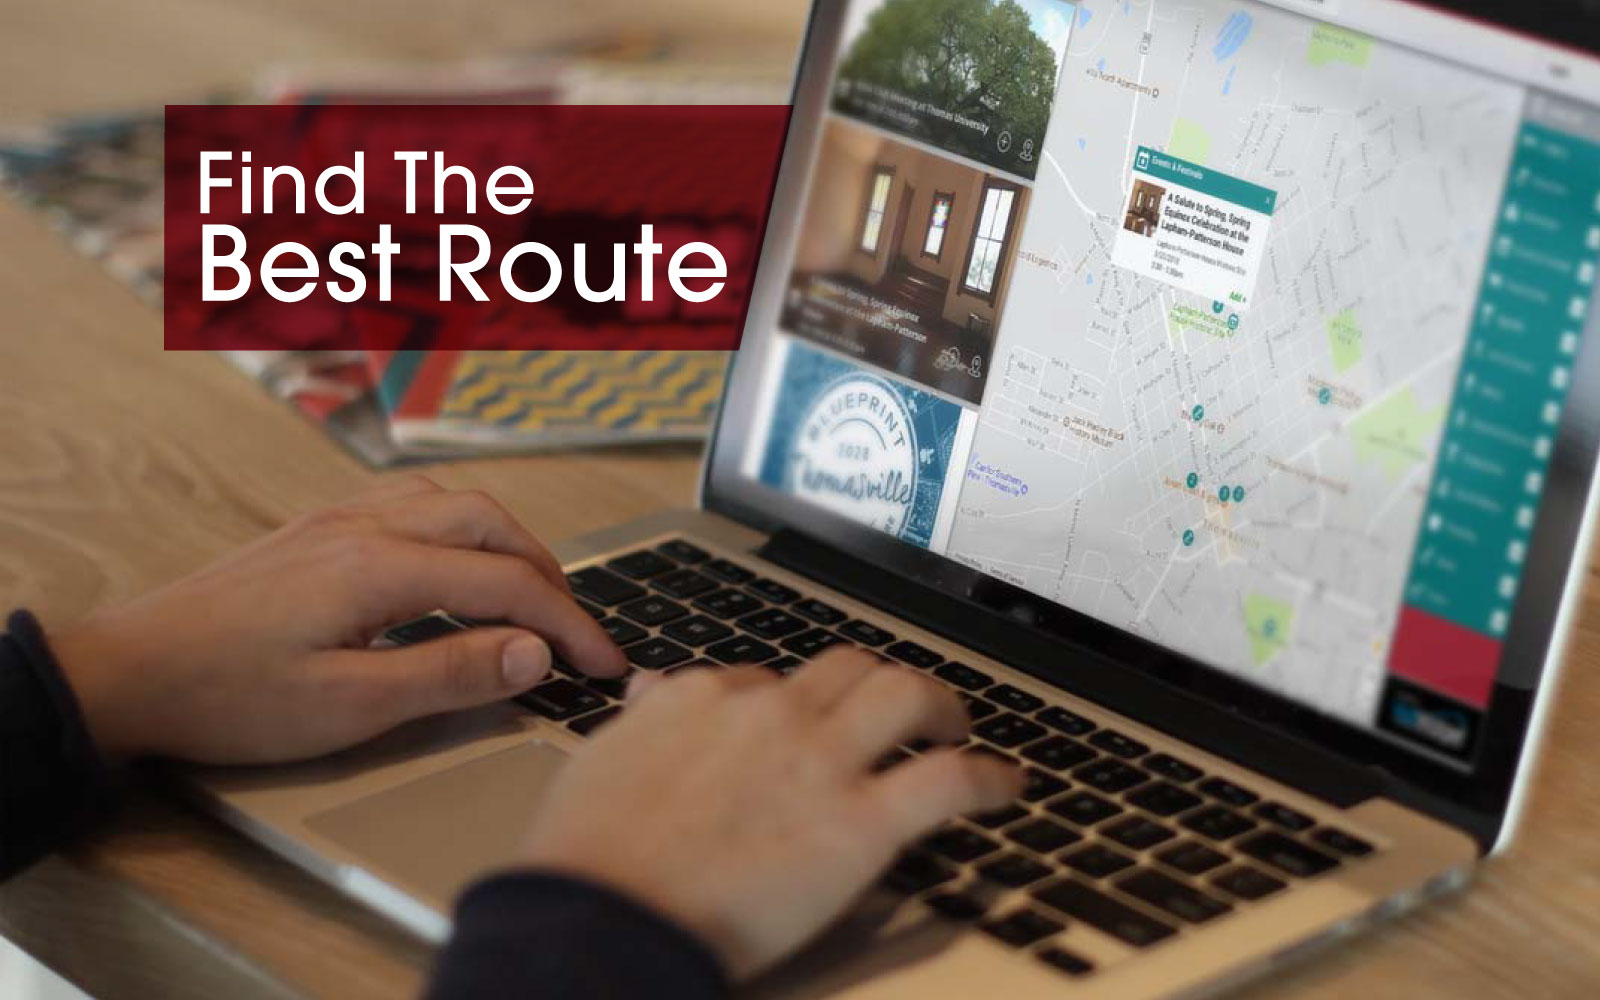 Find the best route